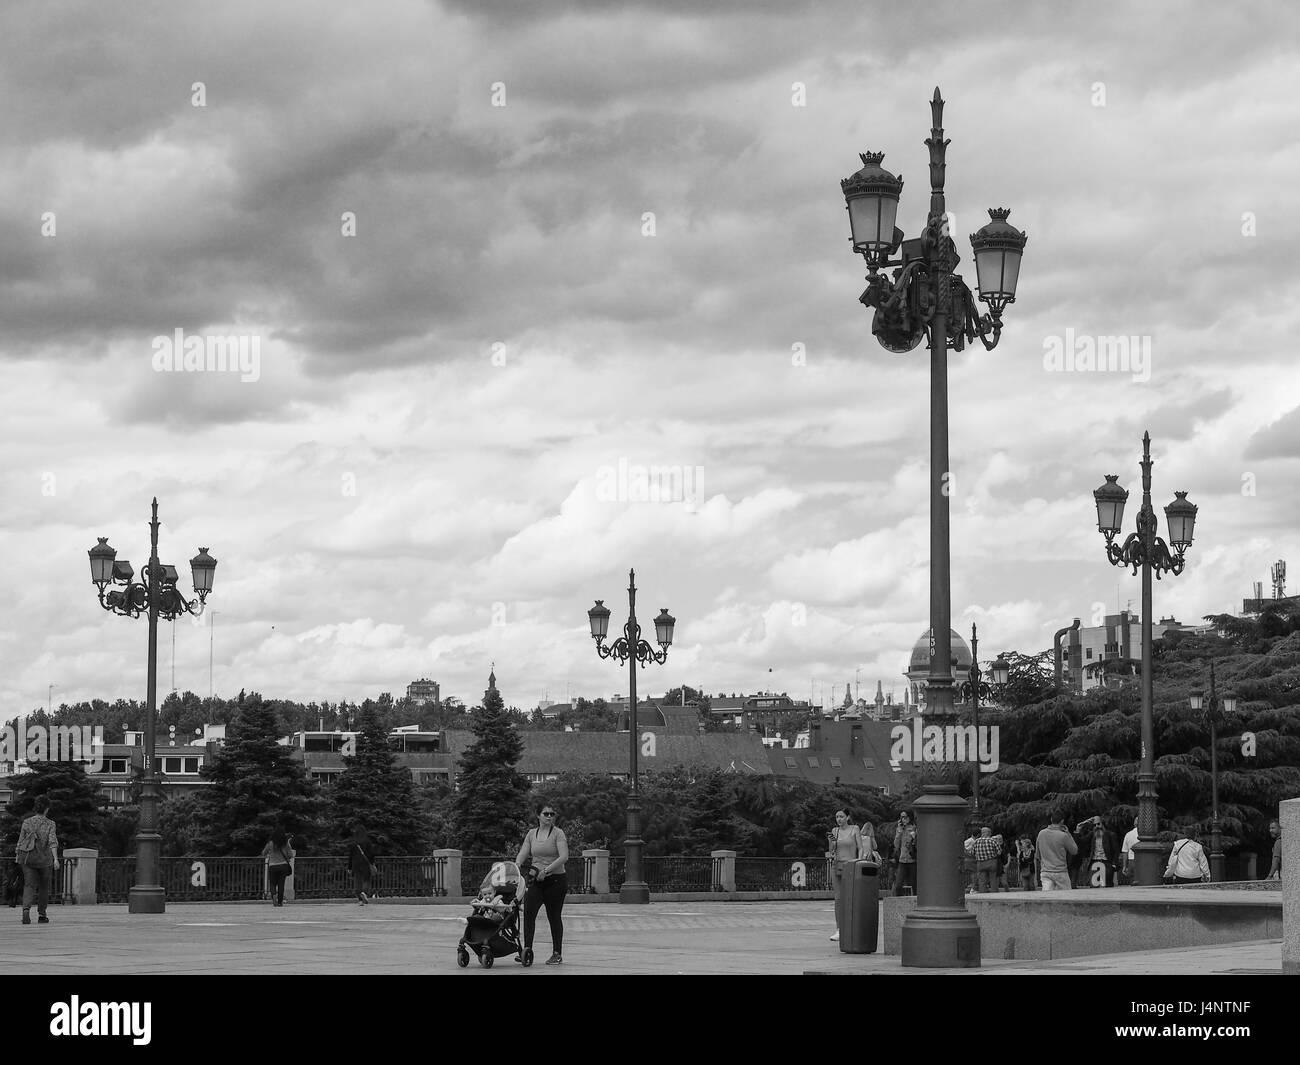 a black and white view of Street light lights lamposts lamps piercing the cloudy sky in the Jardines del Cabo Noval - Stock Image